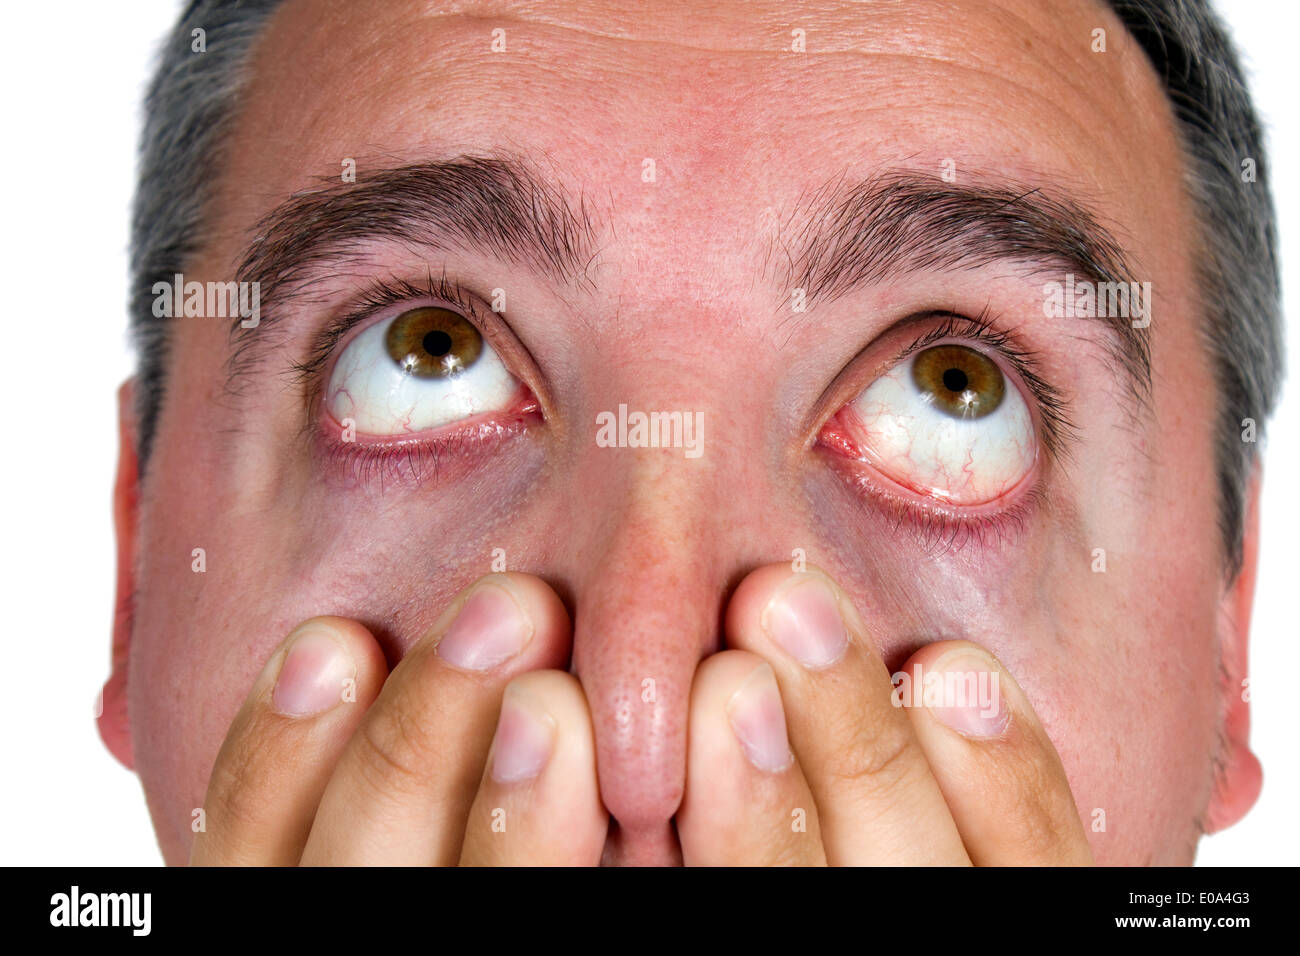 Eyeballs of man as he looks up in surprise and shock. - Stock Image